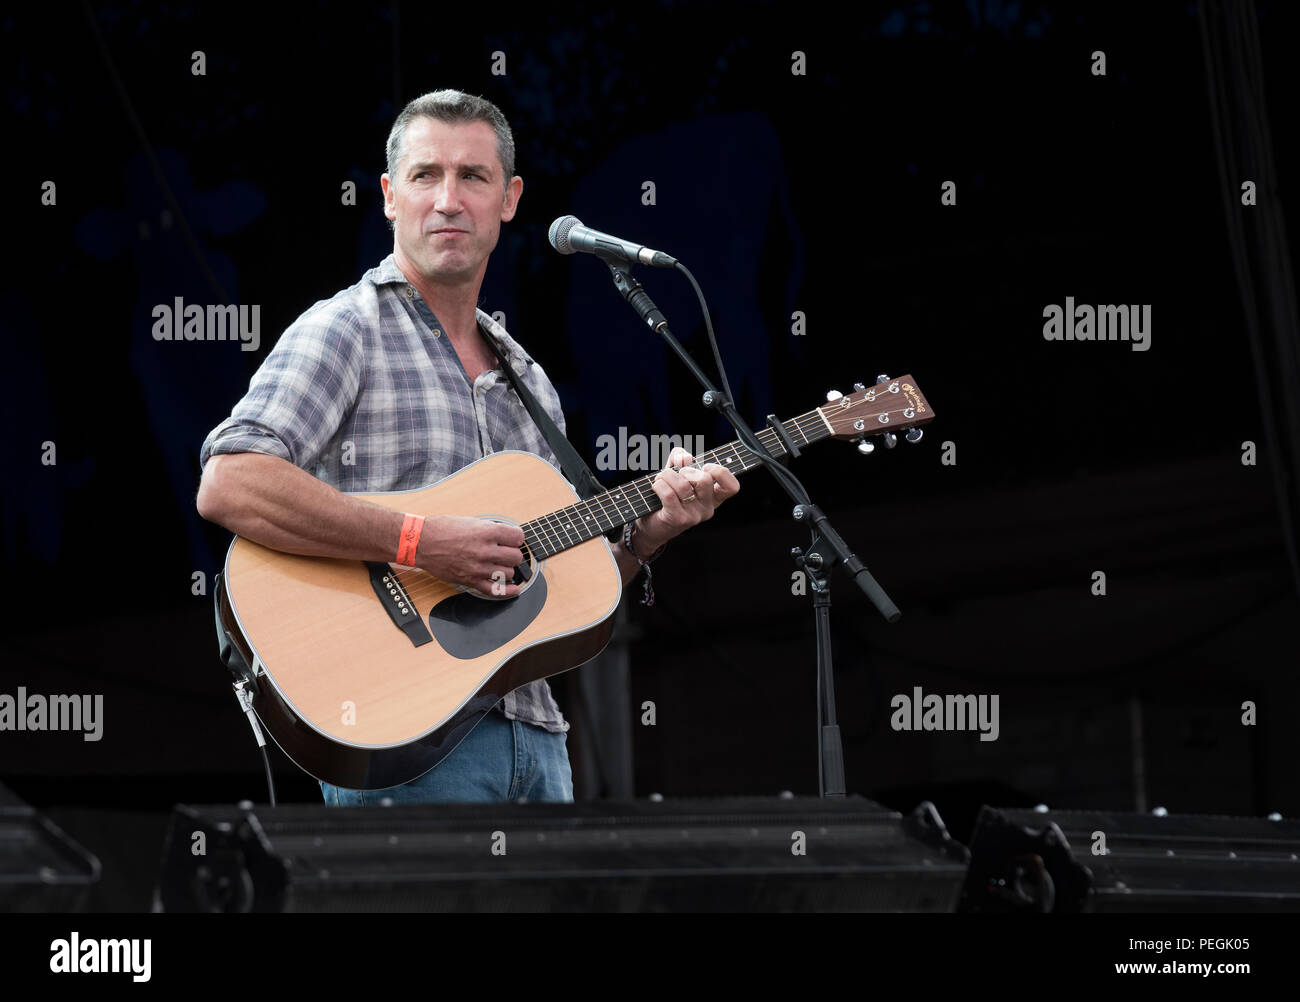 Eric Sedge performing at Fairport's Cropredy Convention, England, UK. August 11, 2018 - Stock Image